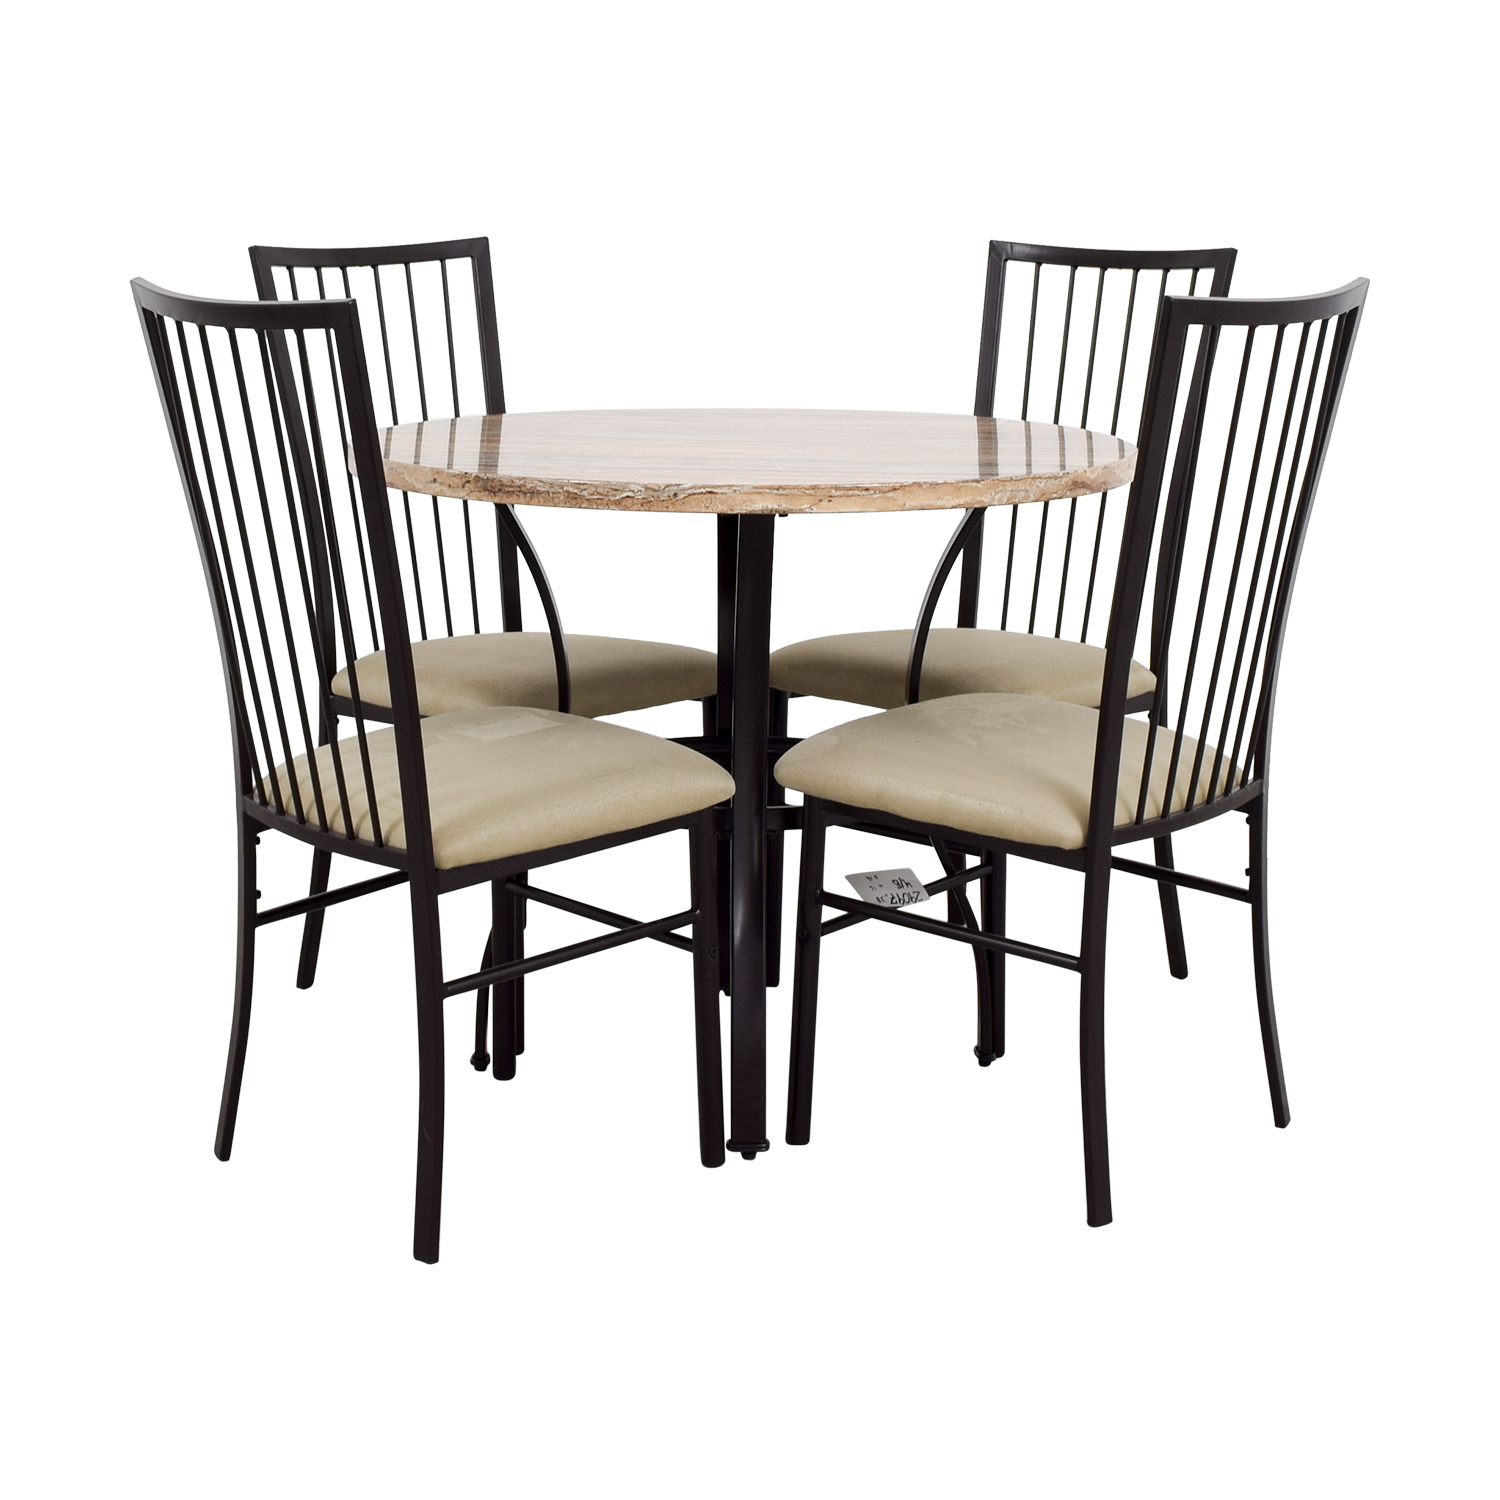 Wayfair Stone Dining Table Set Price